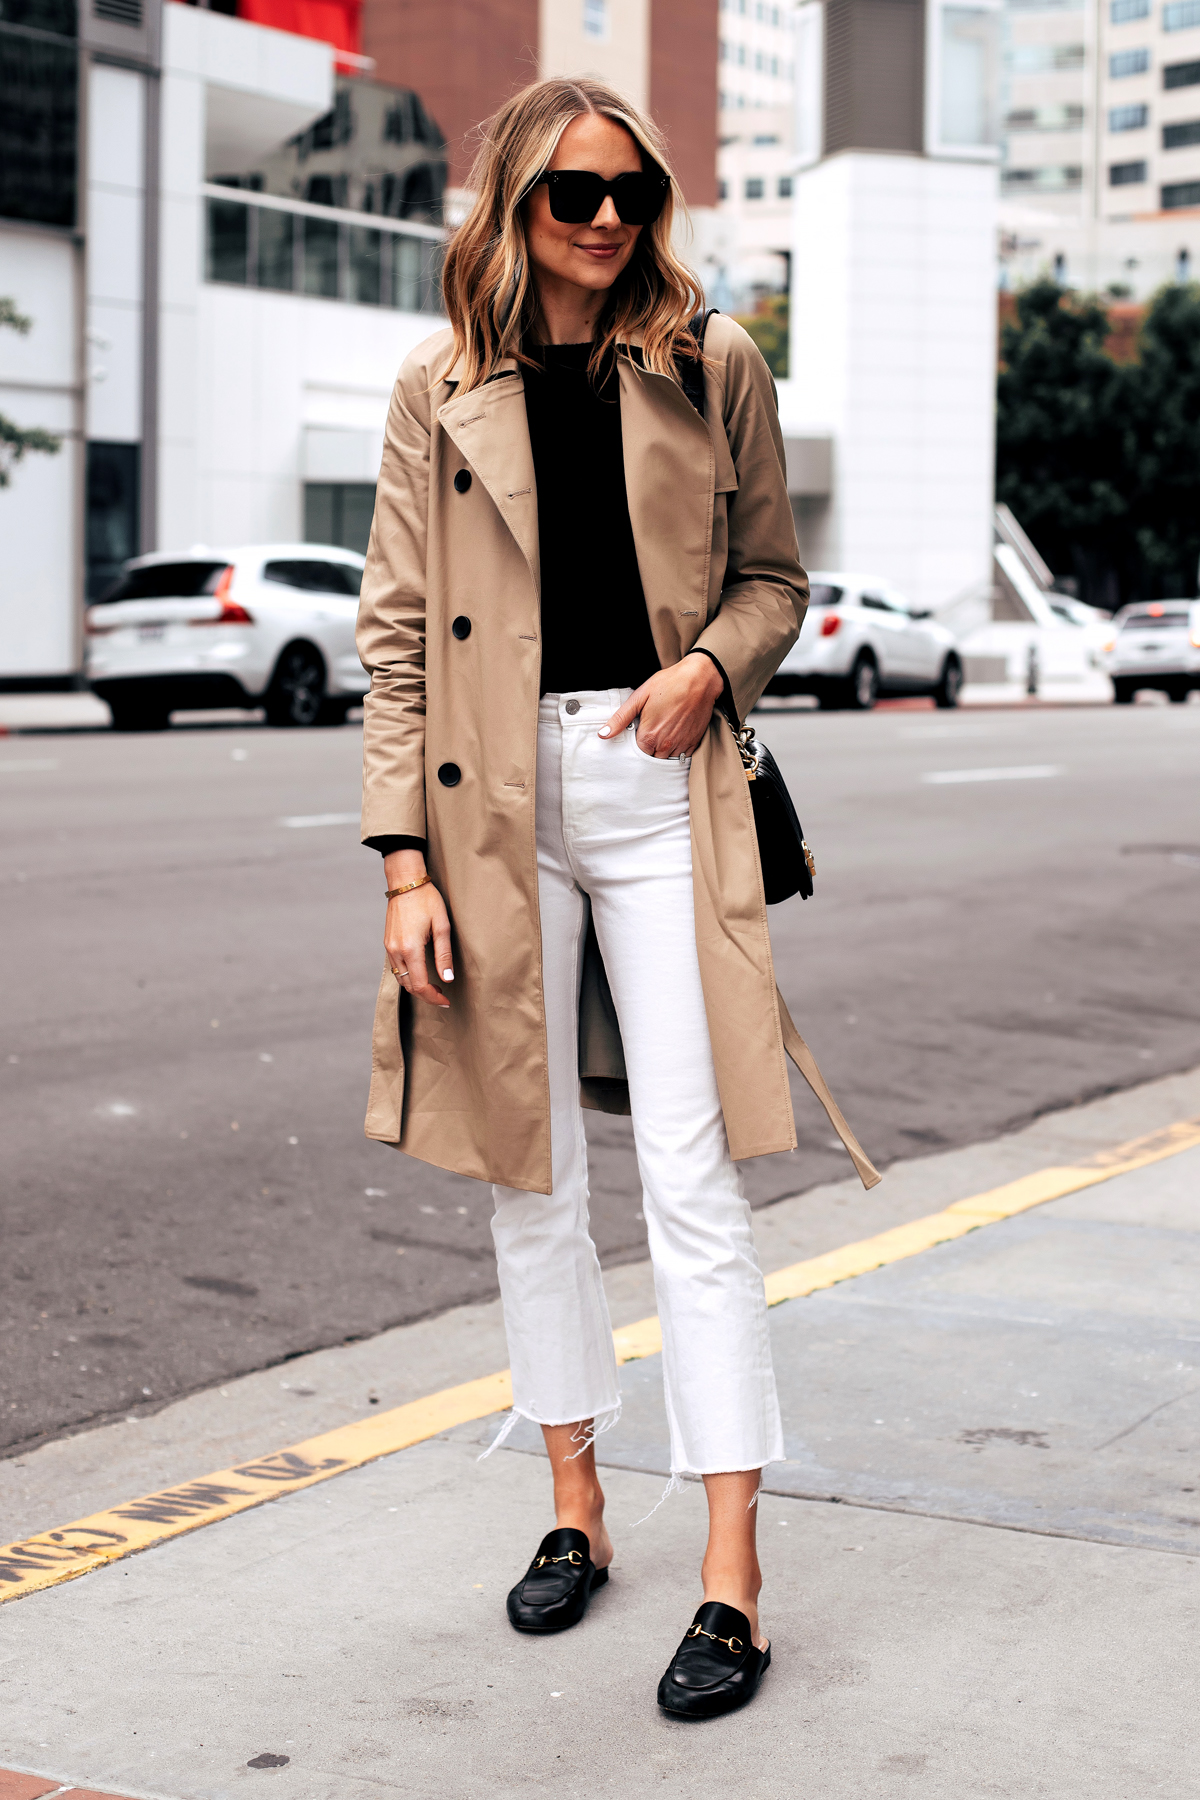 Fashion Jackson Capsule Wardrobe Wearing Everlane Trench Coat Black Sweater Everlane White Crop Jeans Black Gucci Mules